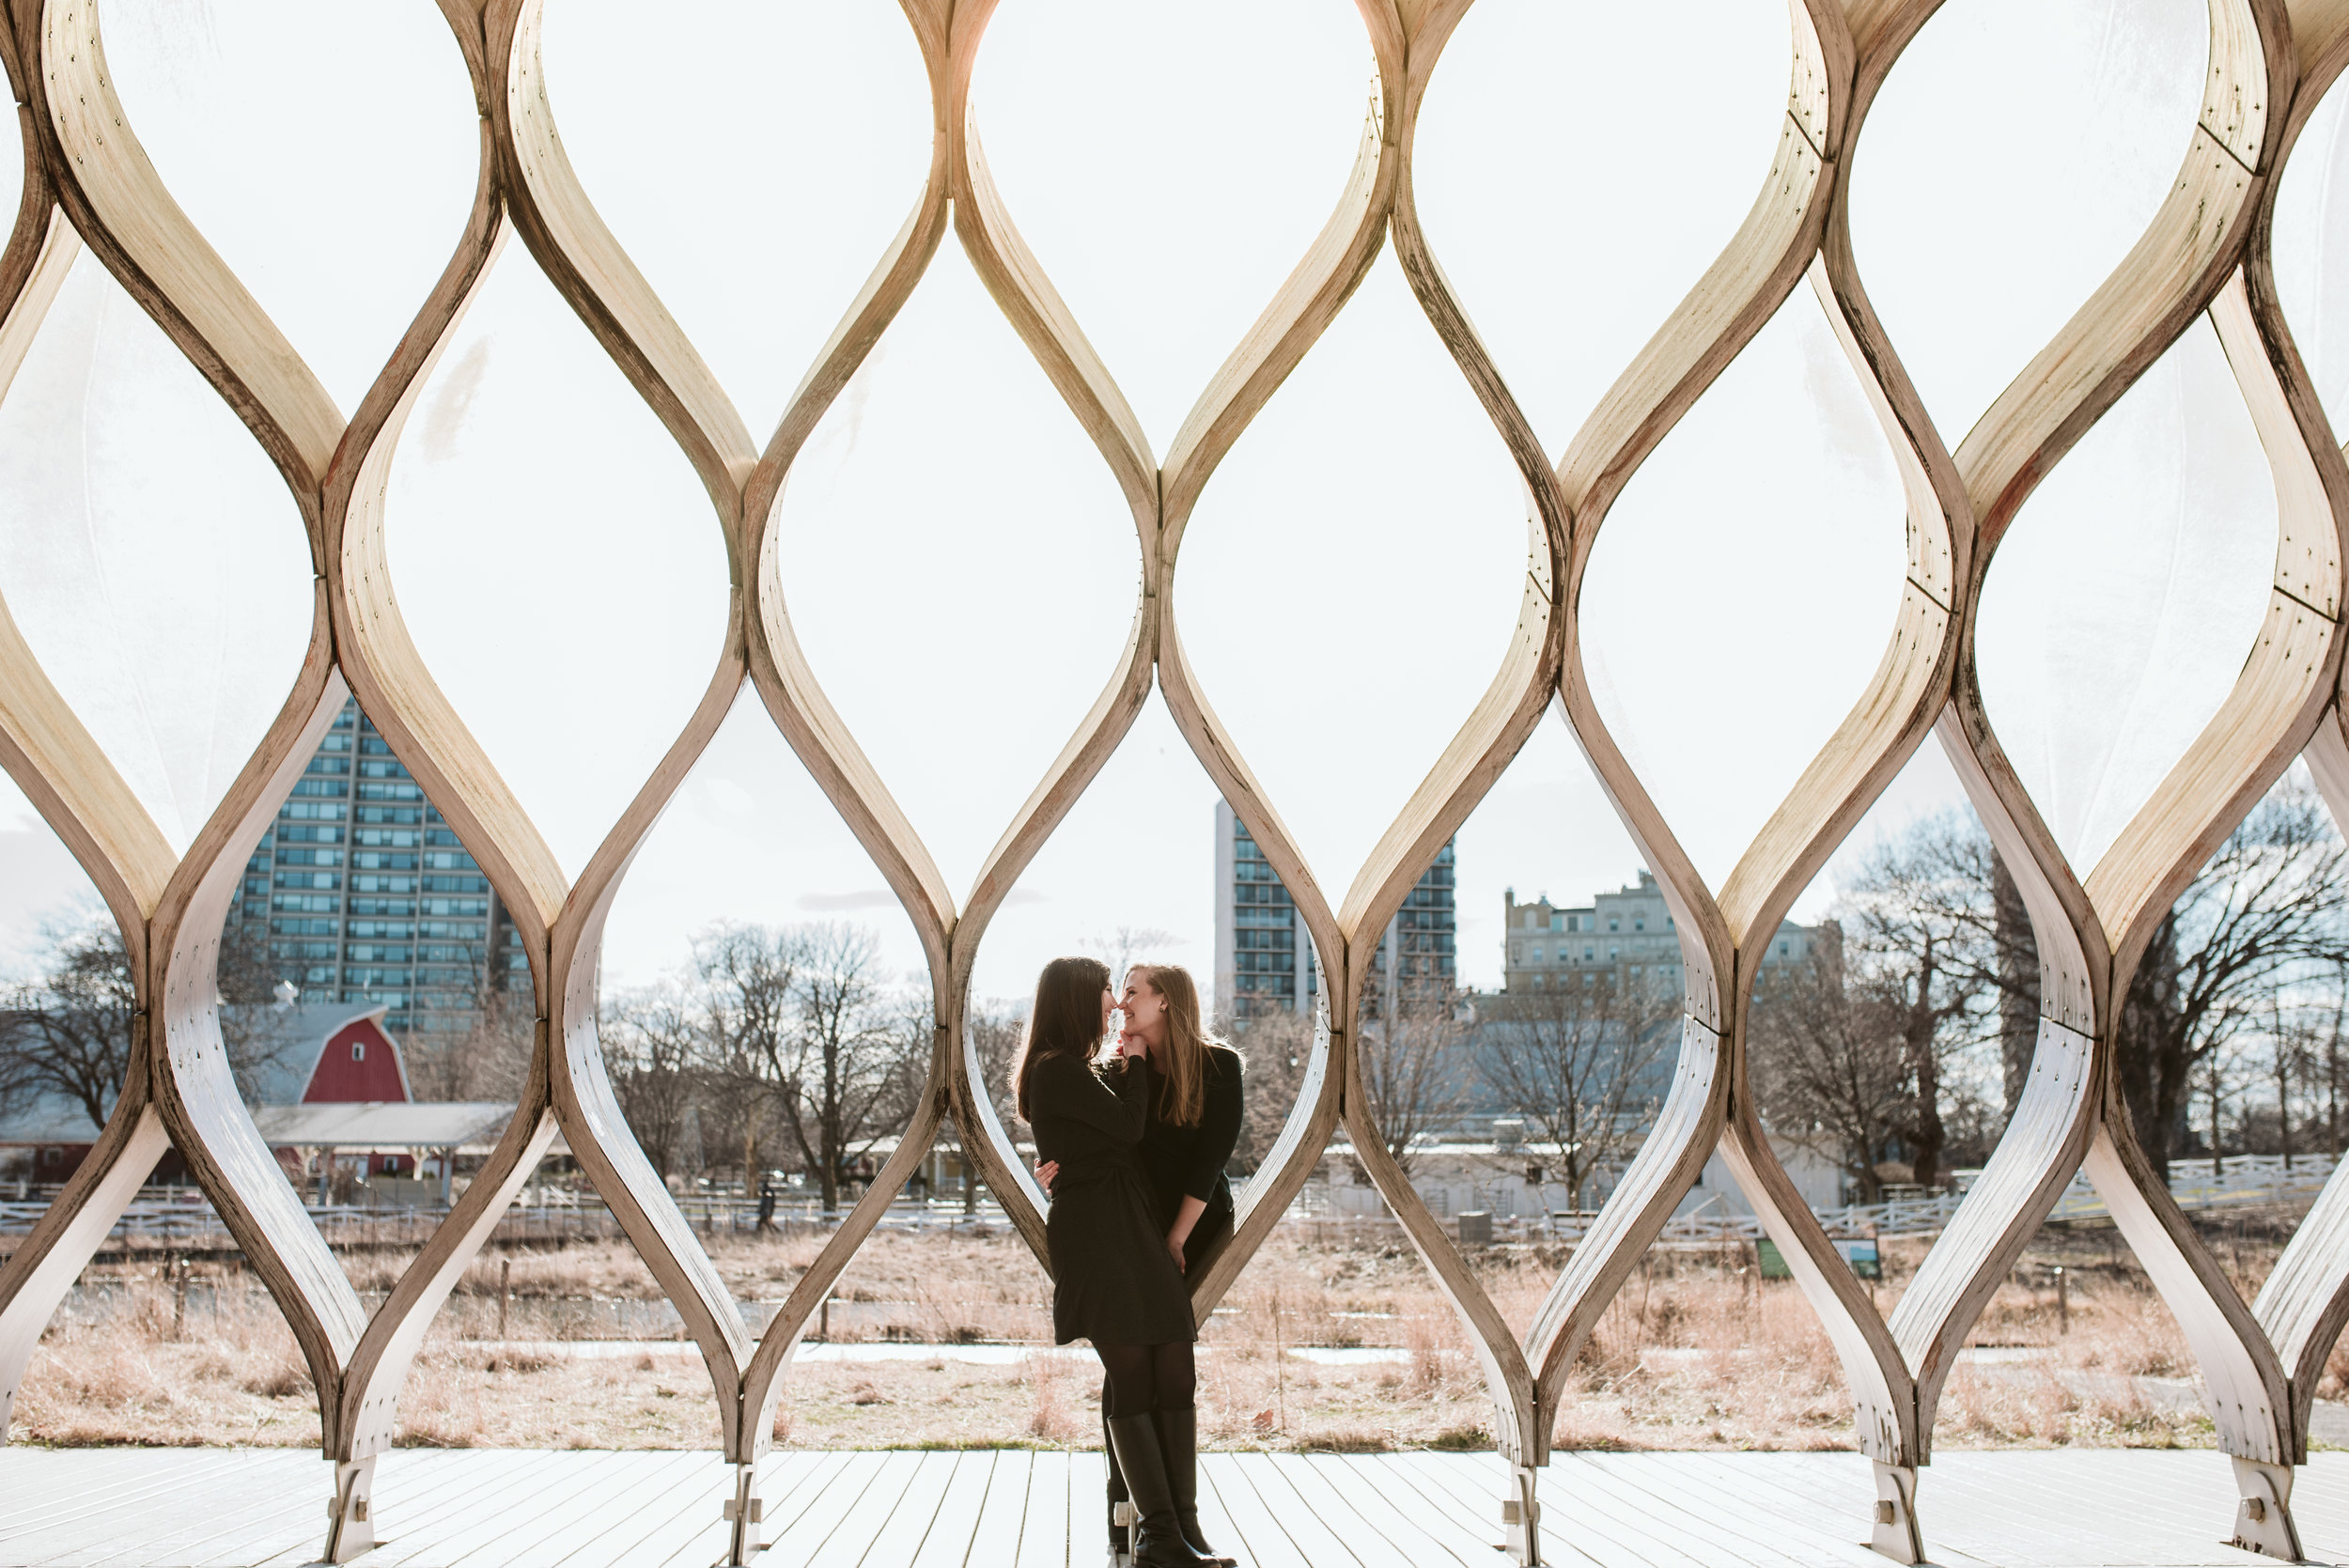 Honeycomb structure lincoln park engagement session chicago wedding photographer